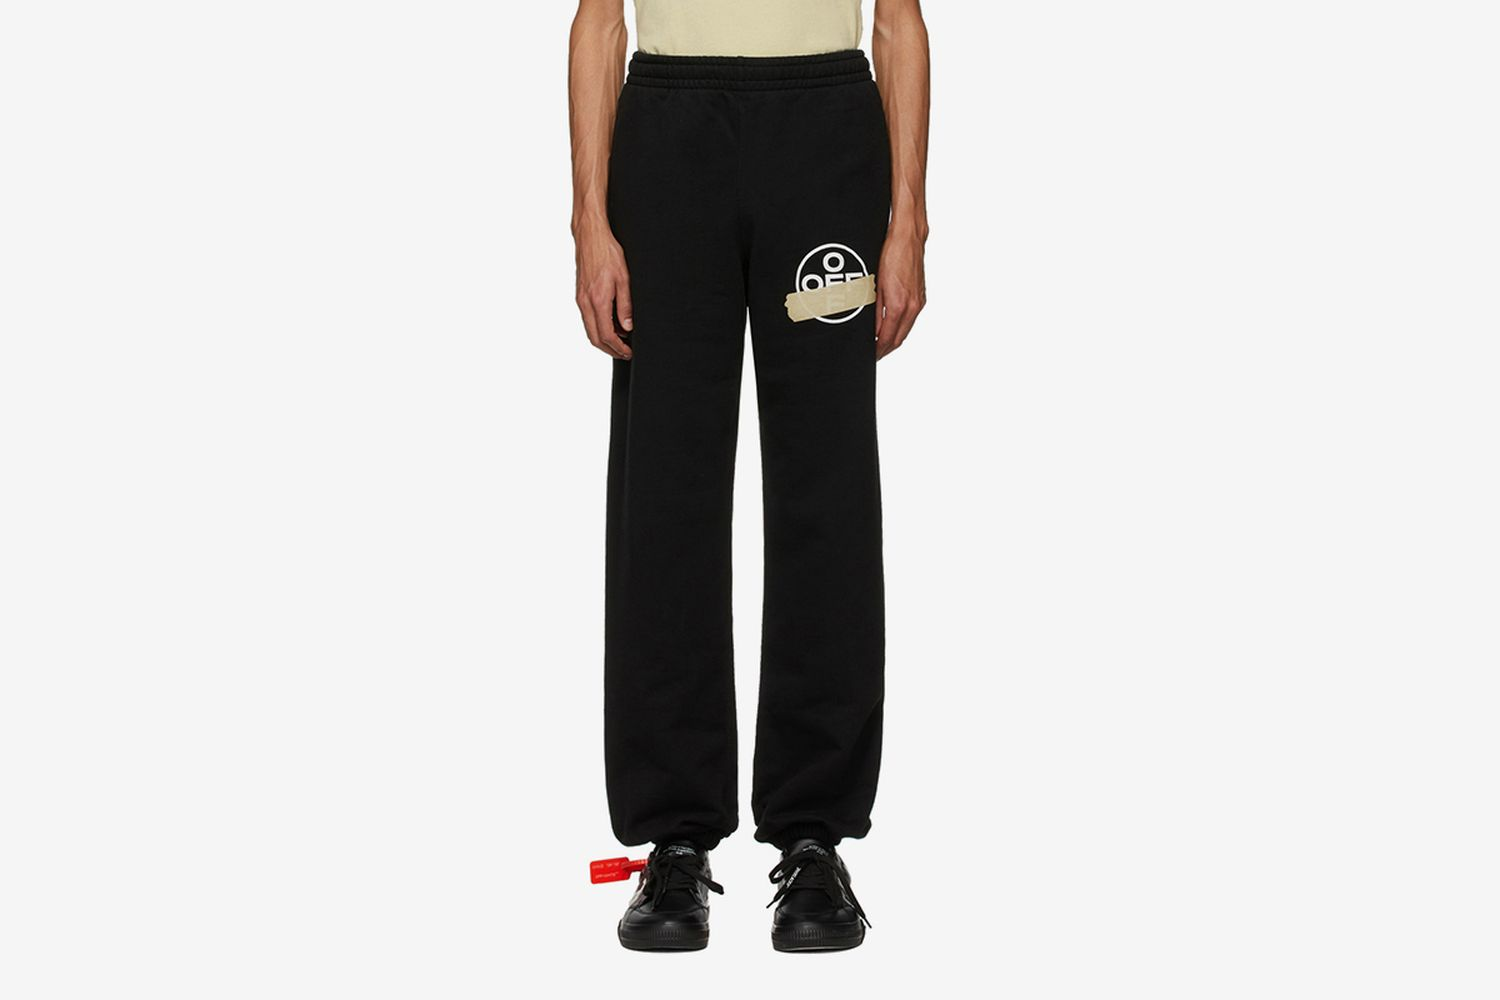 Tape Arrows Lounge Pants